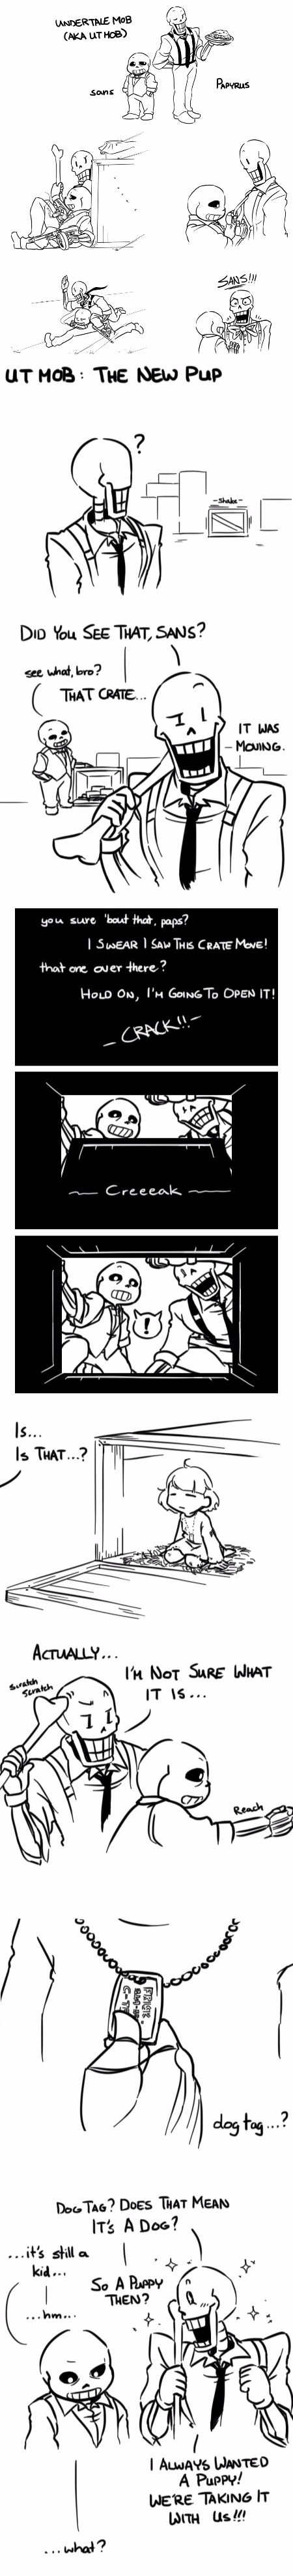 Sans, Papyrus, and Frisk - Undertale MobsterUT AU - comic